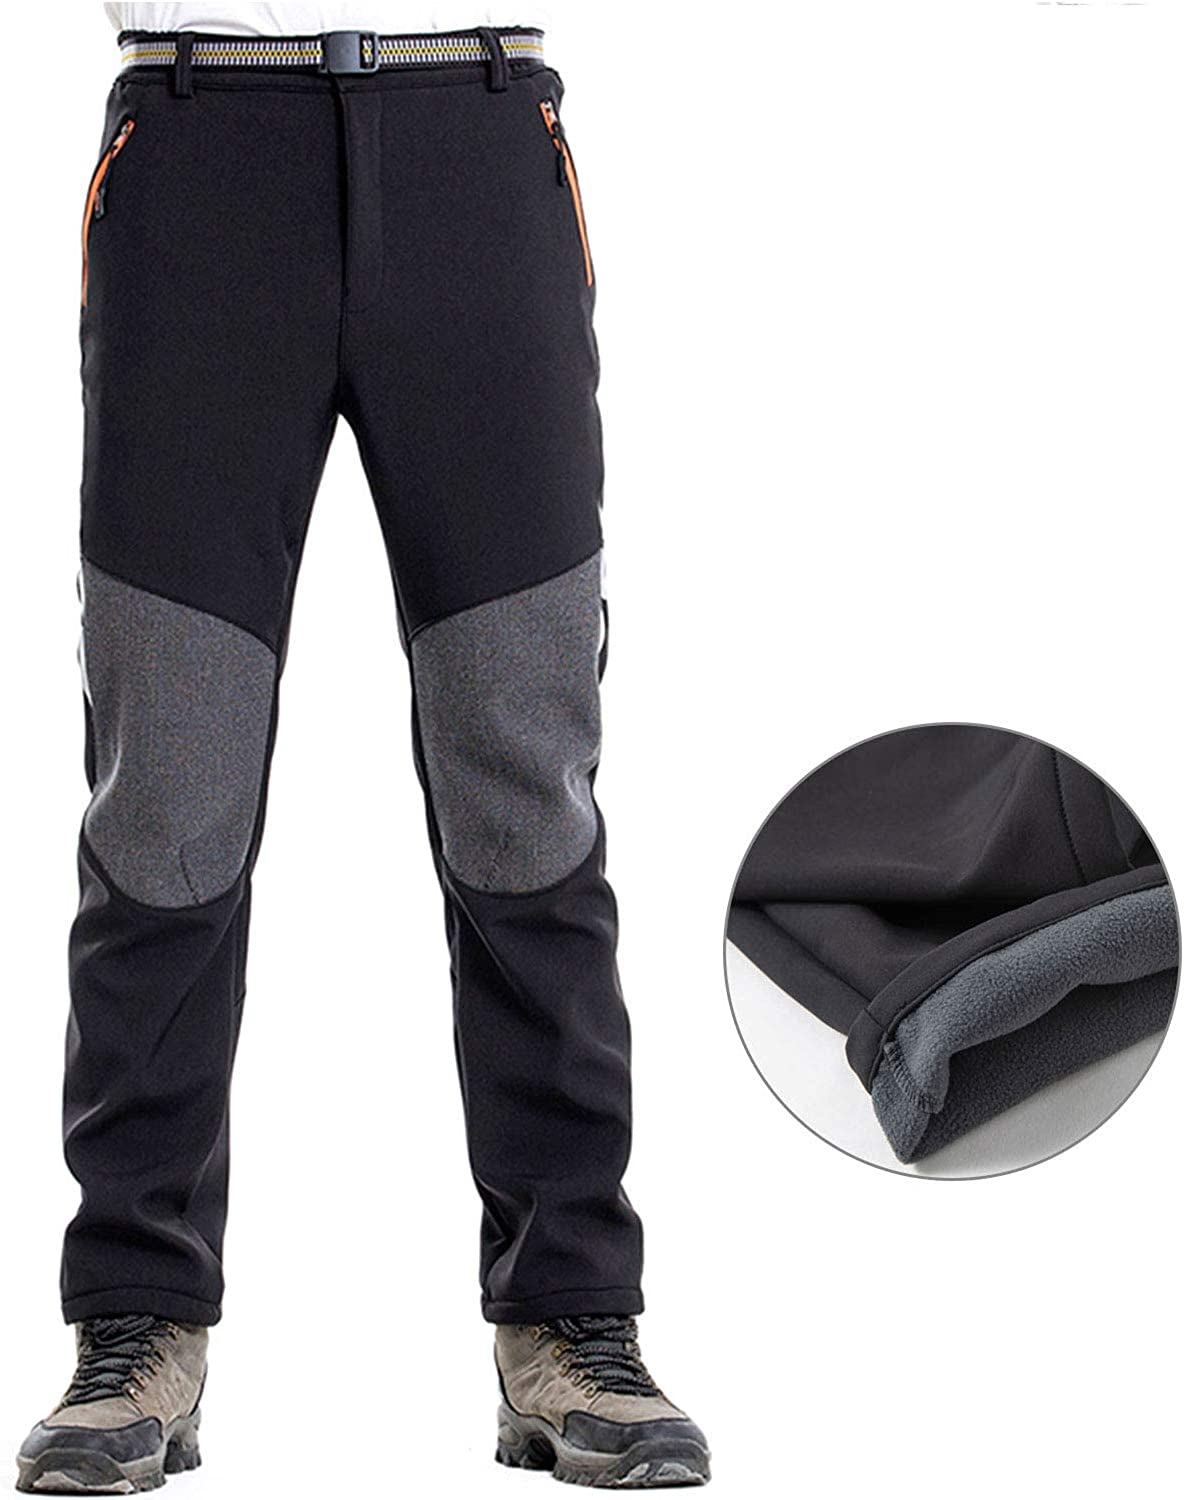 WOG2008 Men Windproof Softshell Hiking Pants Quick Dry Outdoor Camping Mountaineering Trousers with Belt